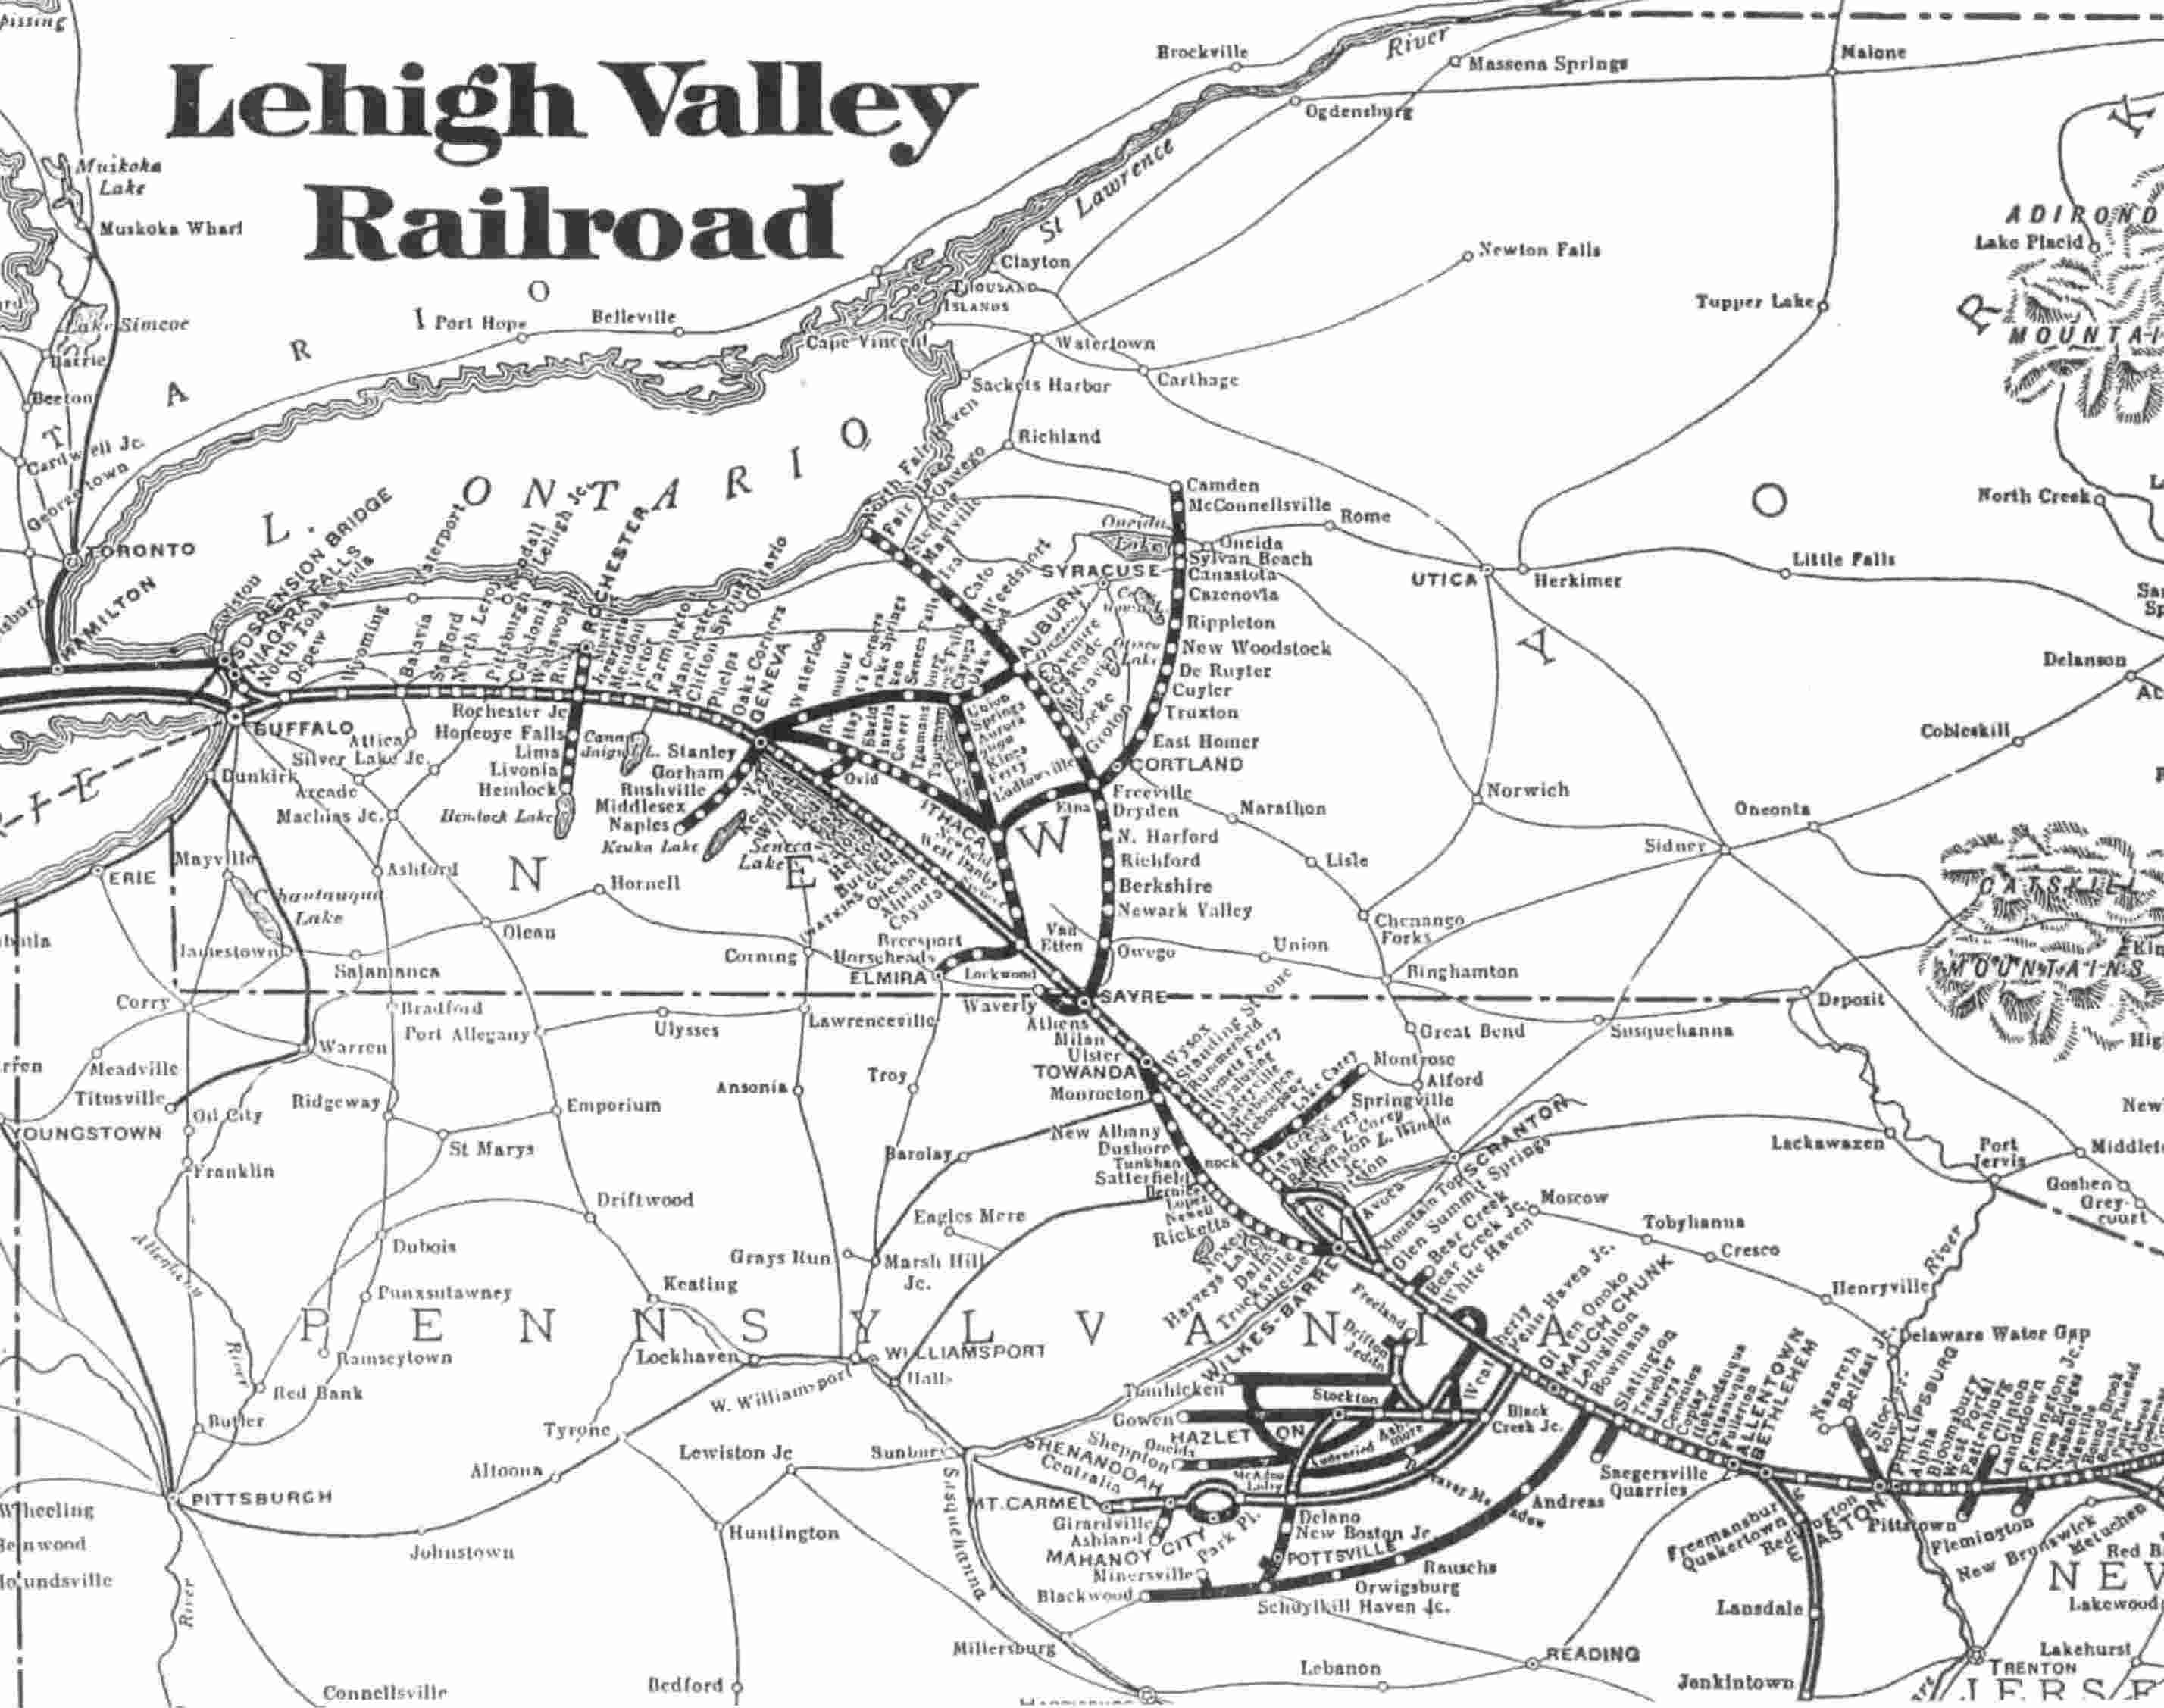 Viewtopic as well Model Railroad Logging Track Plans as well Viewtopic furthermore Viewtopic in addition 37559436. on viewtopic